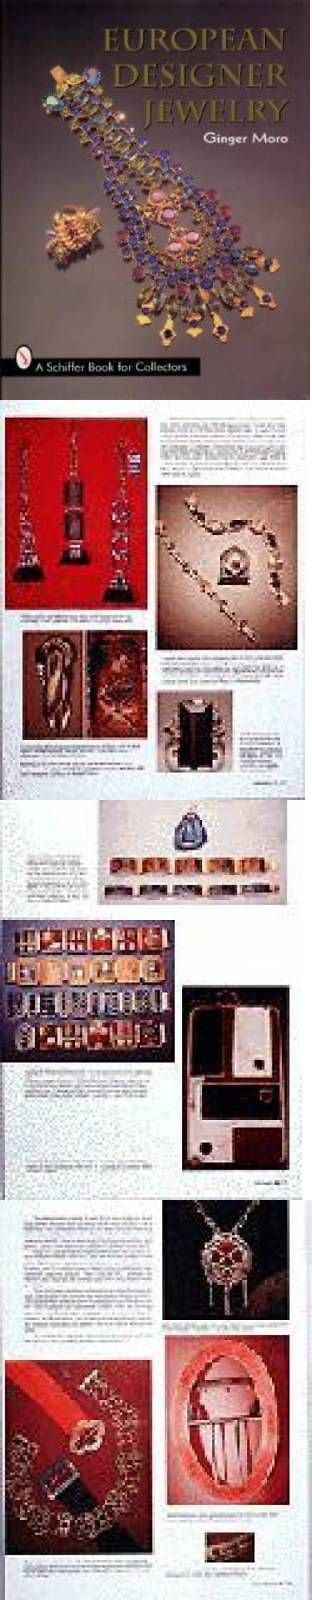 Price Guides and Publications 171122: European Designer Jewelry Book ...